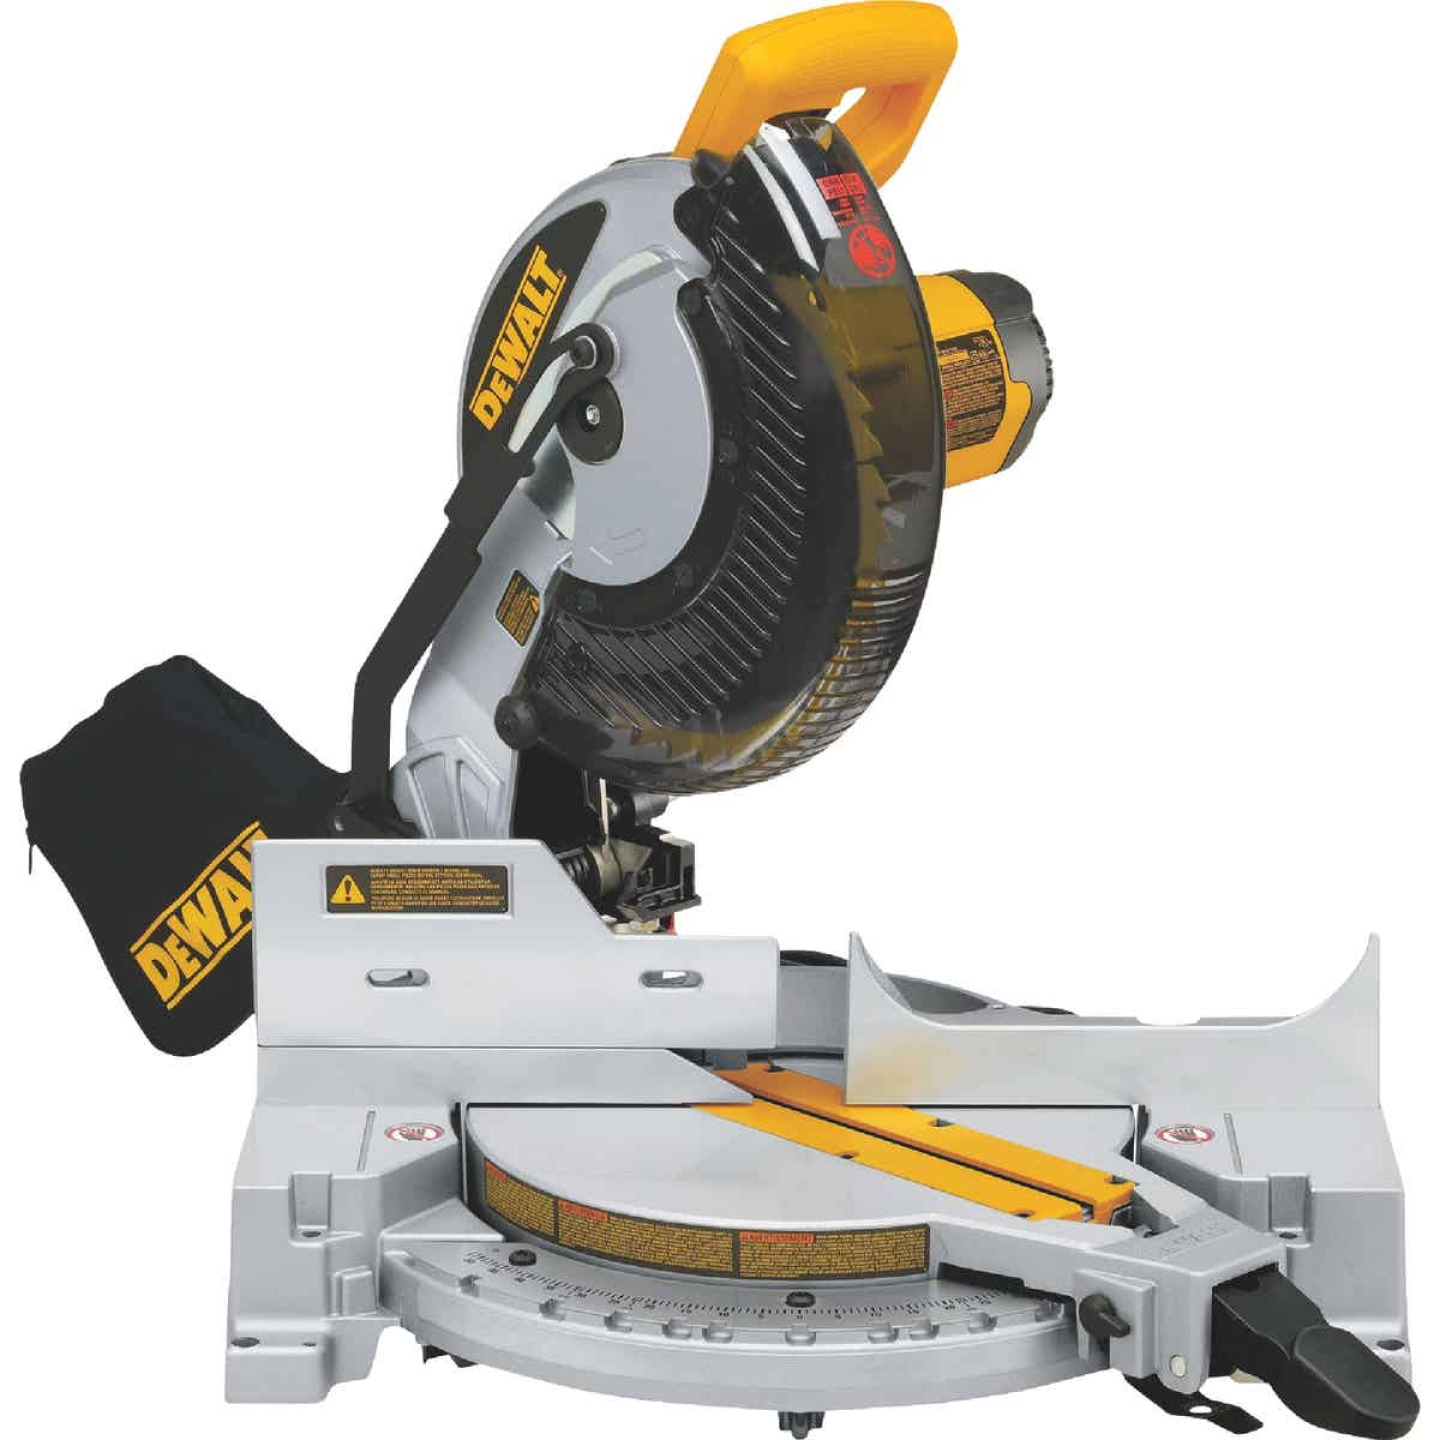 DeWalt 10 In. 15A Compound Miter Saw Image 1